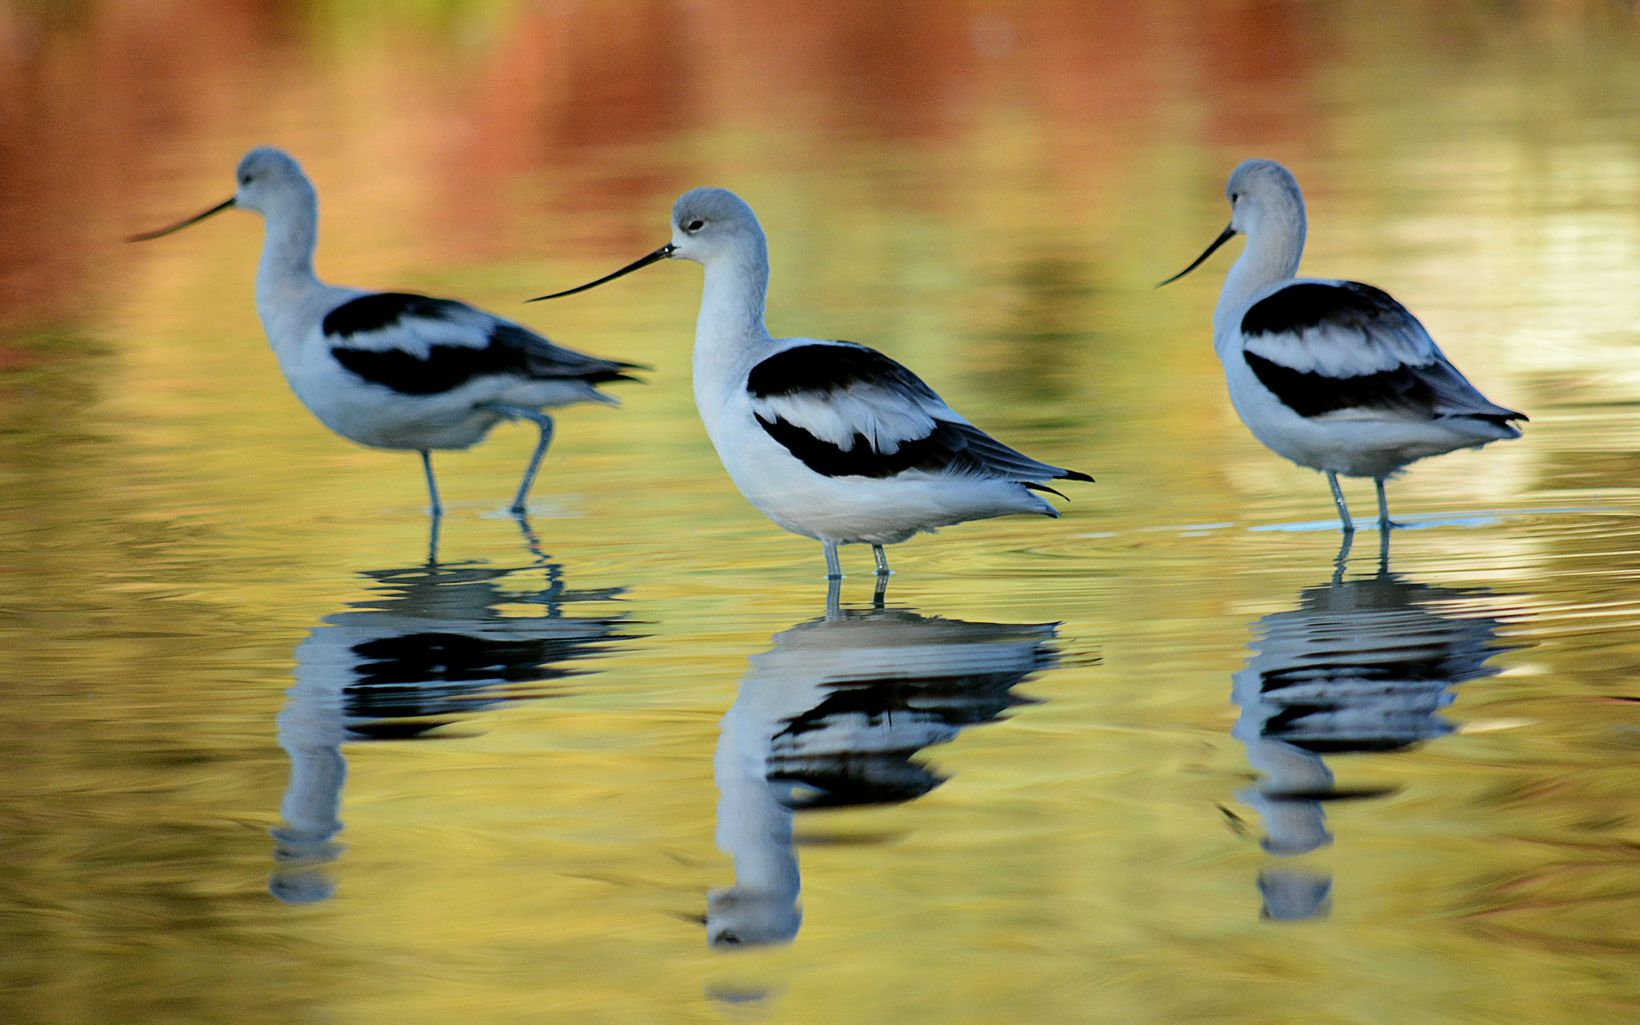 Three black and white wading birds standing in water with fall colors reflecting off of the water surface.